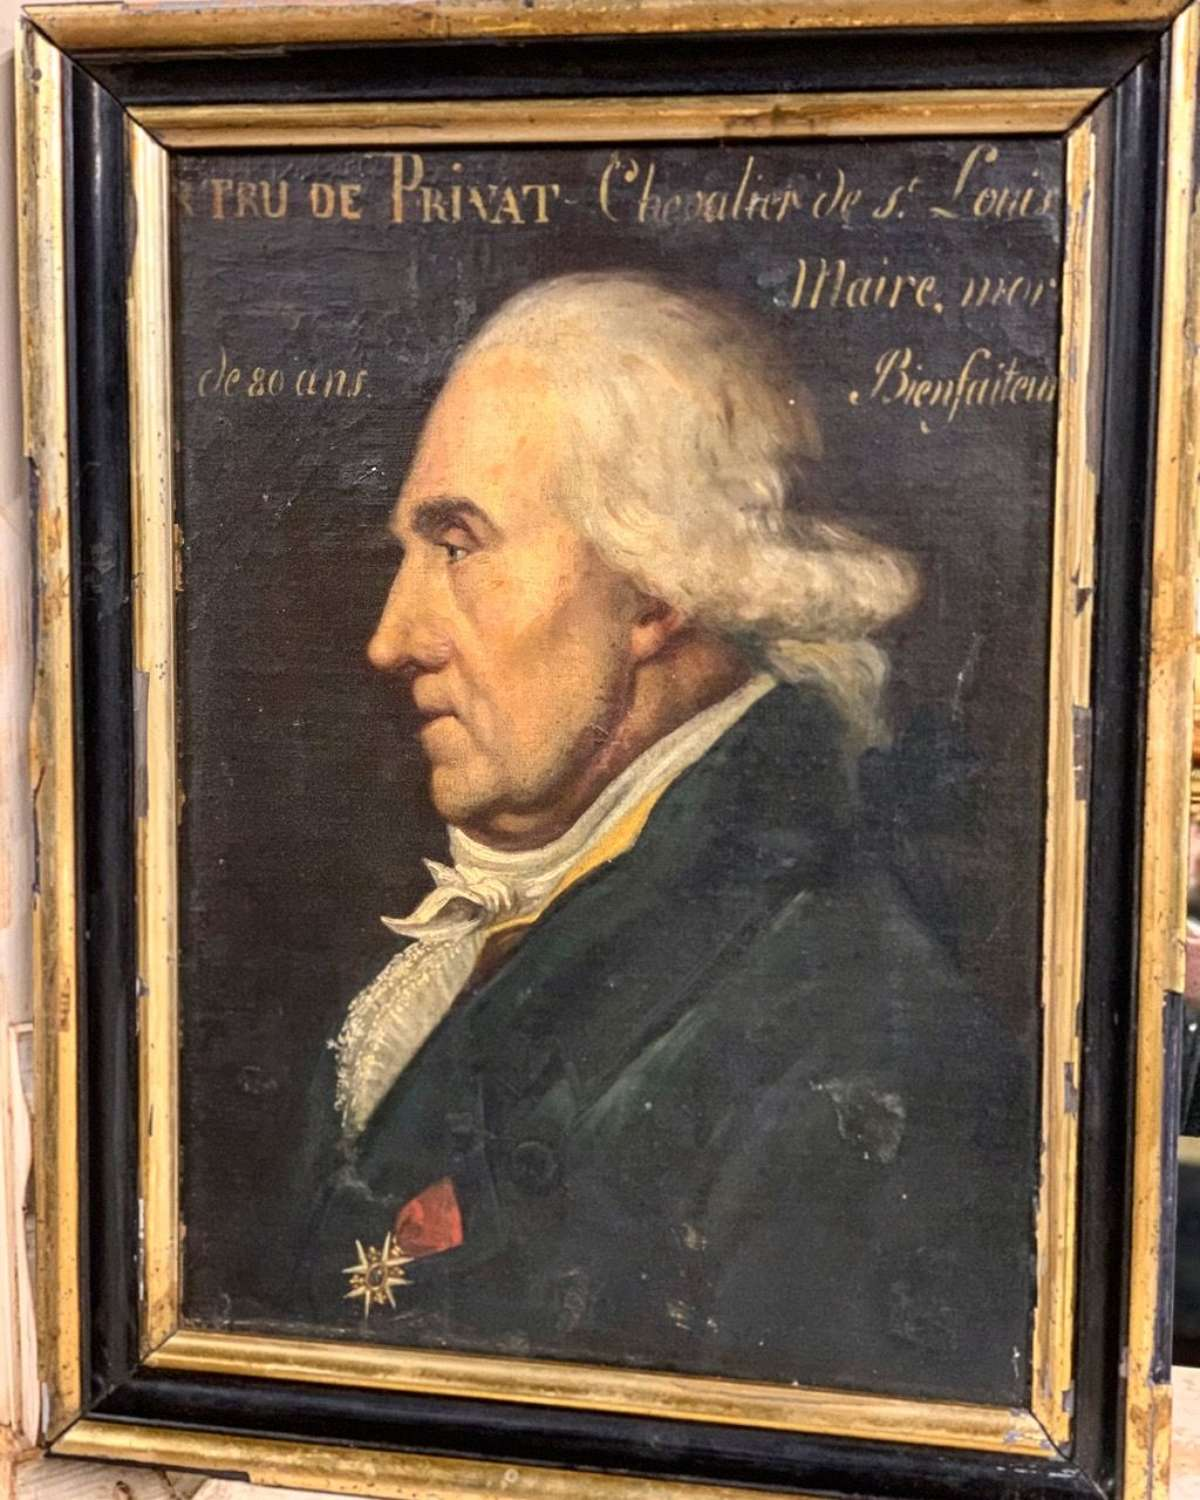 18TH CENTURY FRENCH PORTRAIT PAINTING